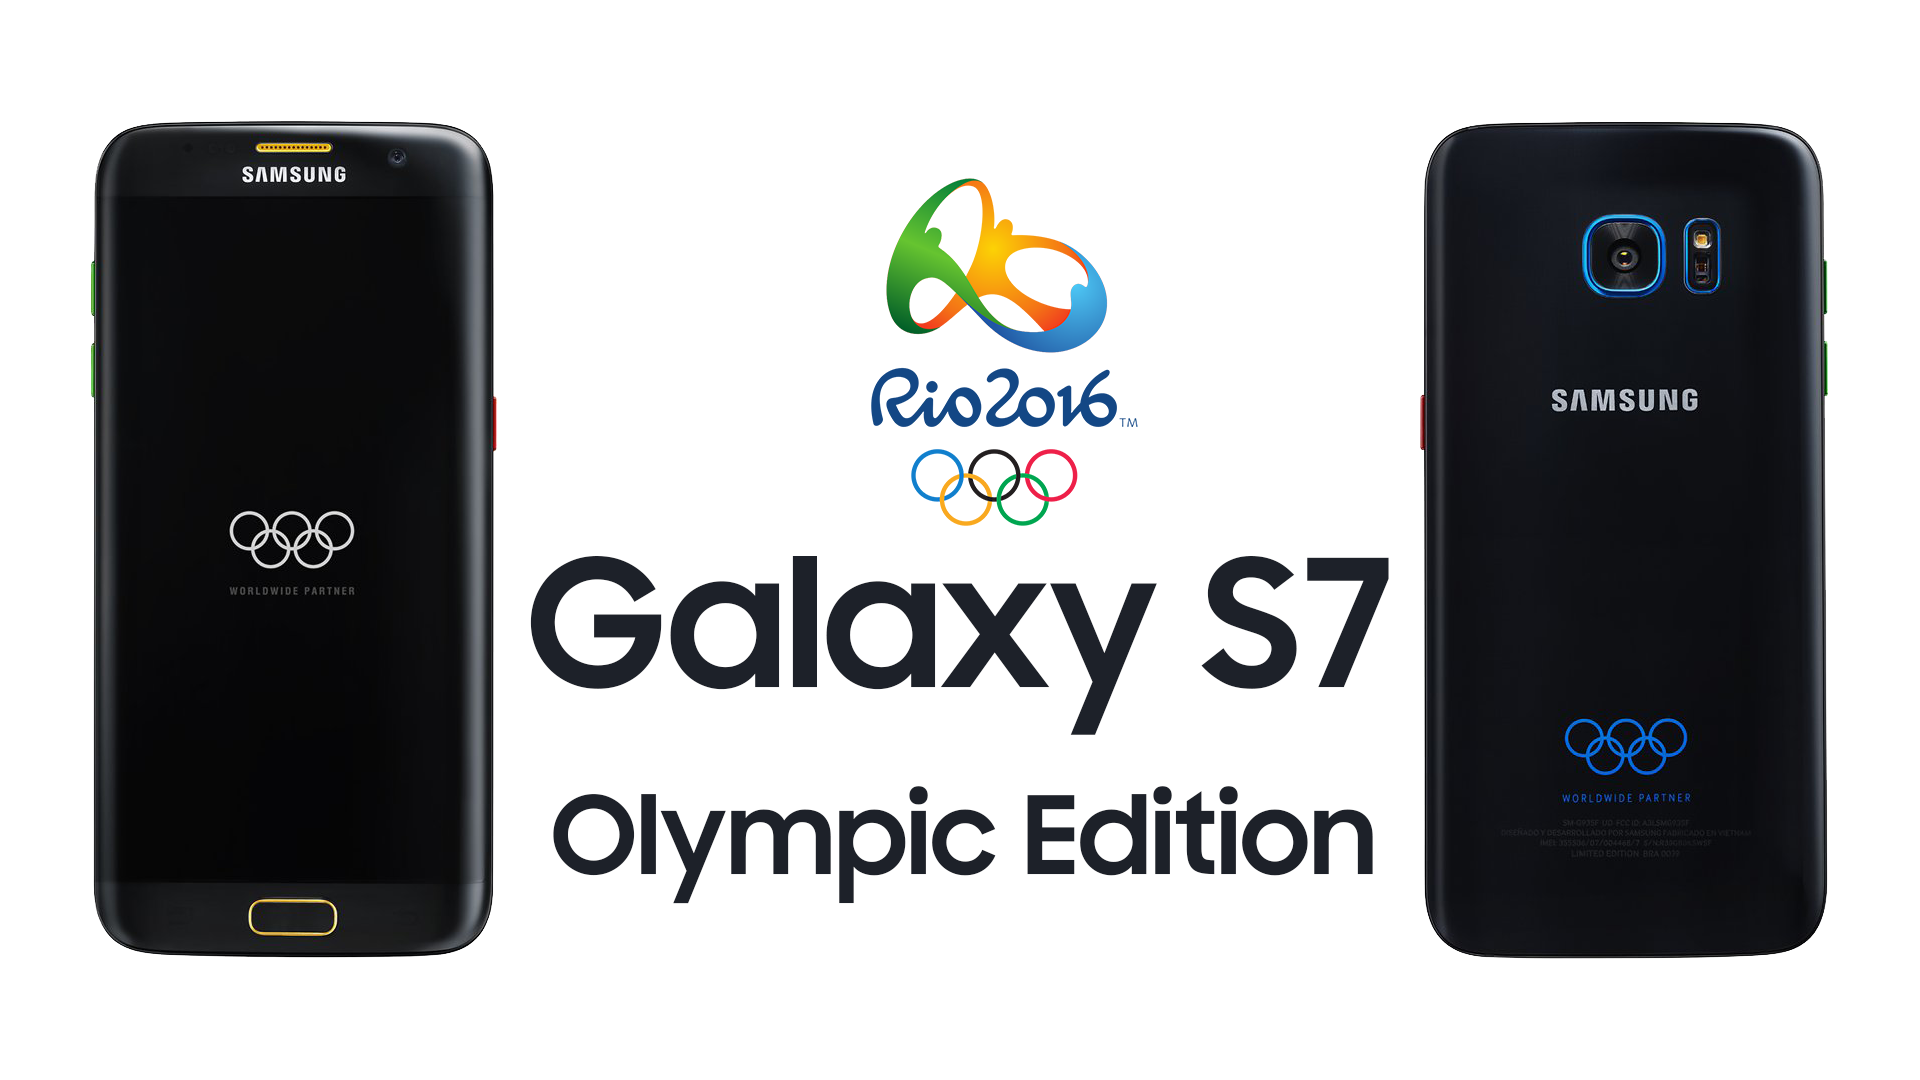 Samsung galaxy s7 edge olympic edition will unveil on july 7 mobile - Teaser Reveals July 7th Unveiling For The Samsung Galaxy S7 Edge Olympic Edition